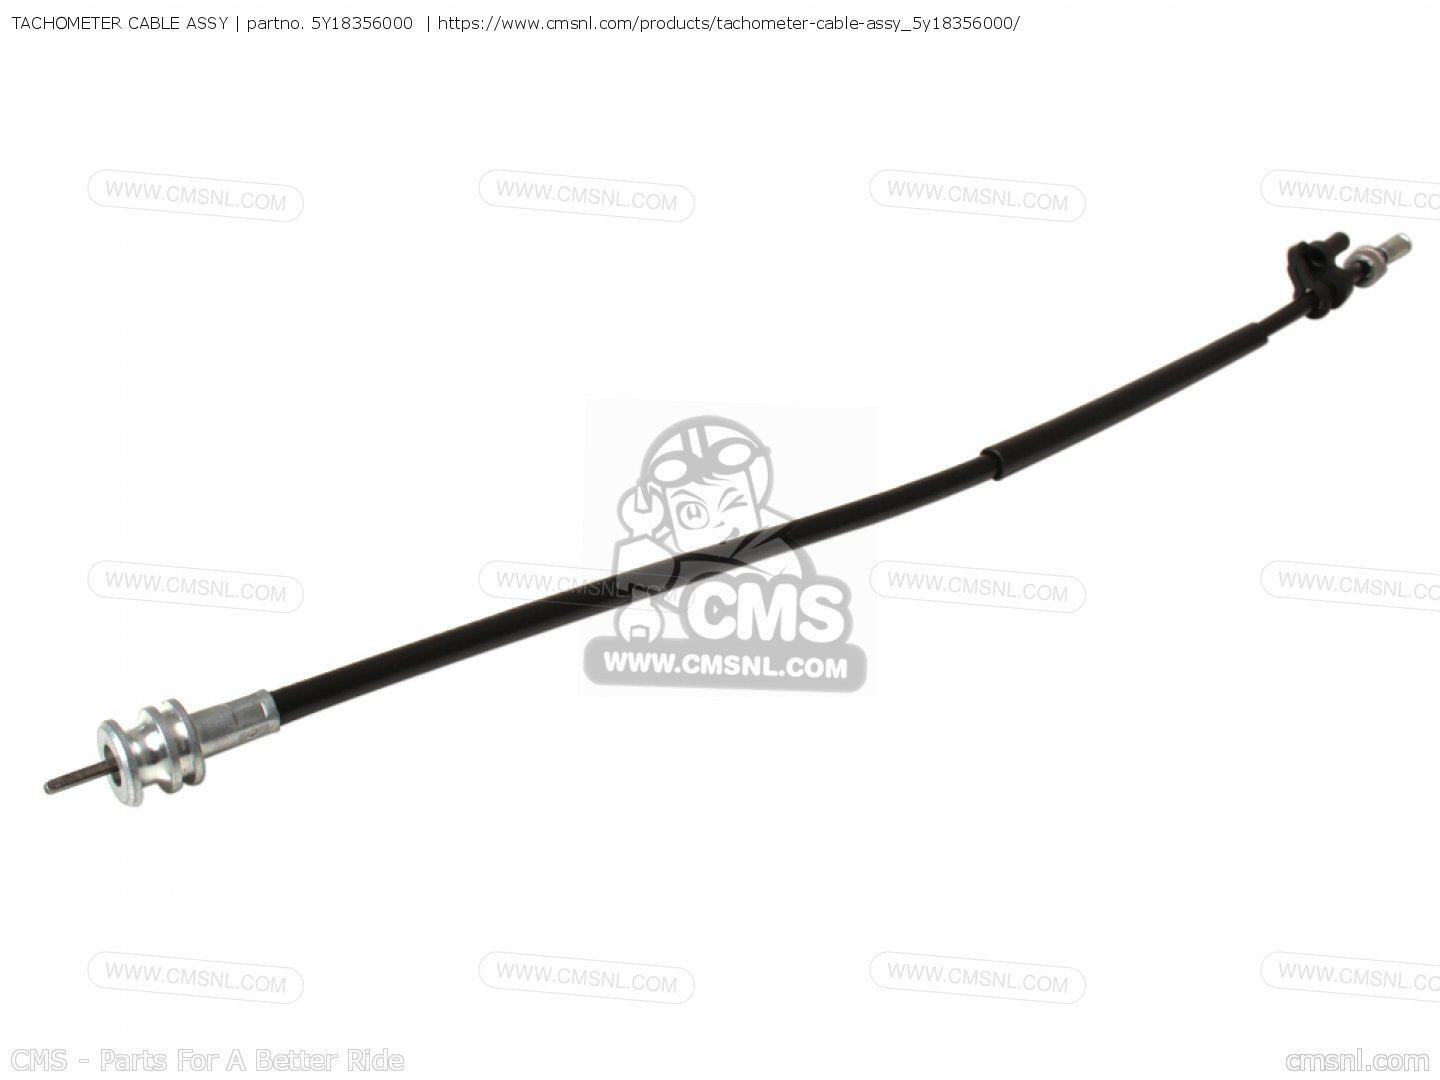 Tachometer Cable Assy For Xt550 Dual Purpose D Usa